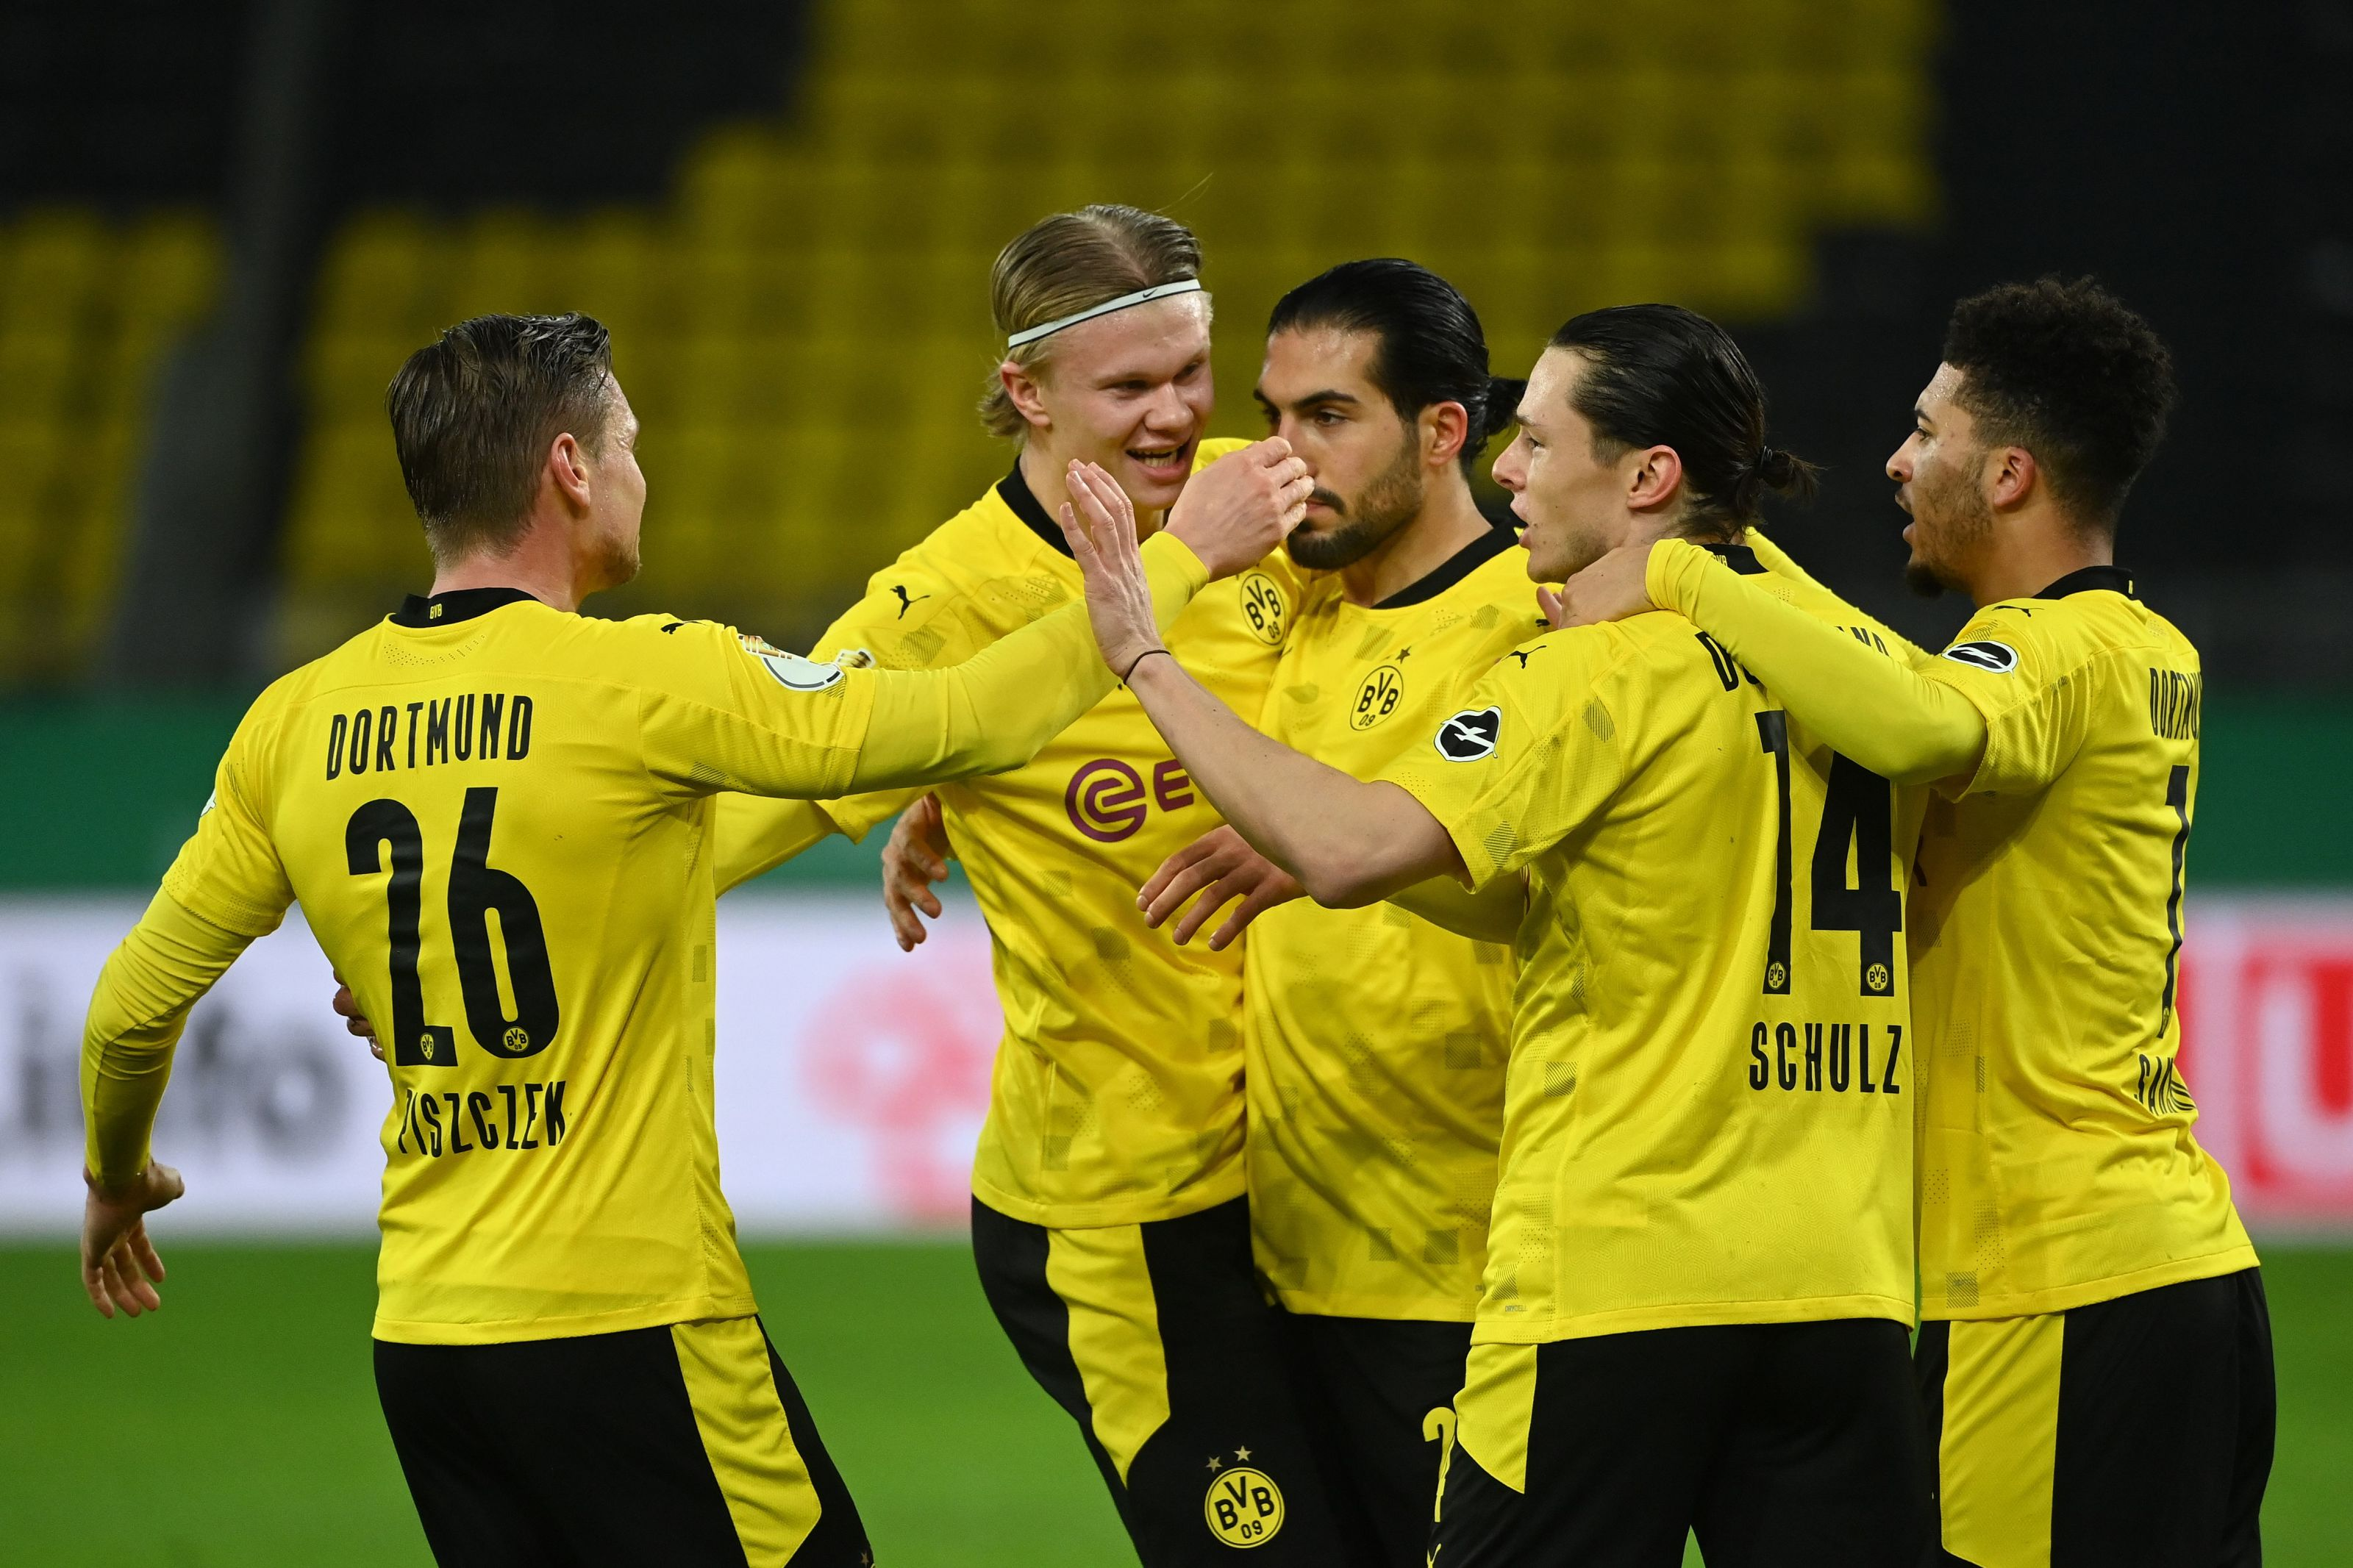 Borussia Dortmund player ratings from 3-2 win over Paderborn